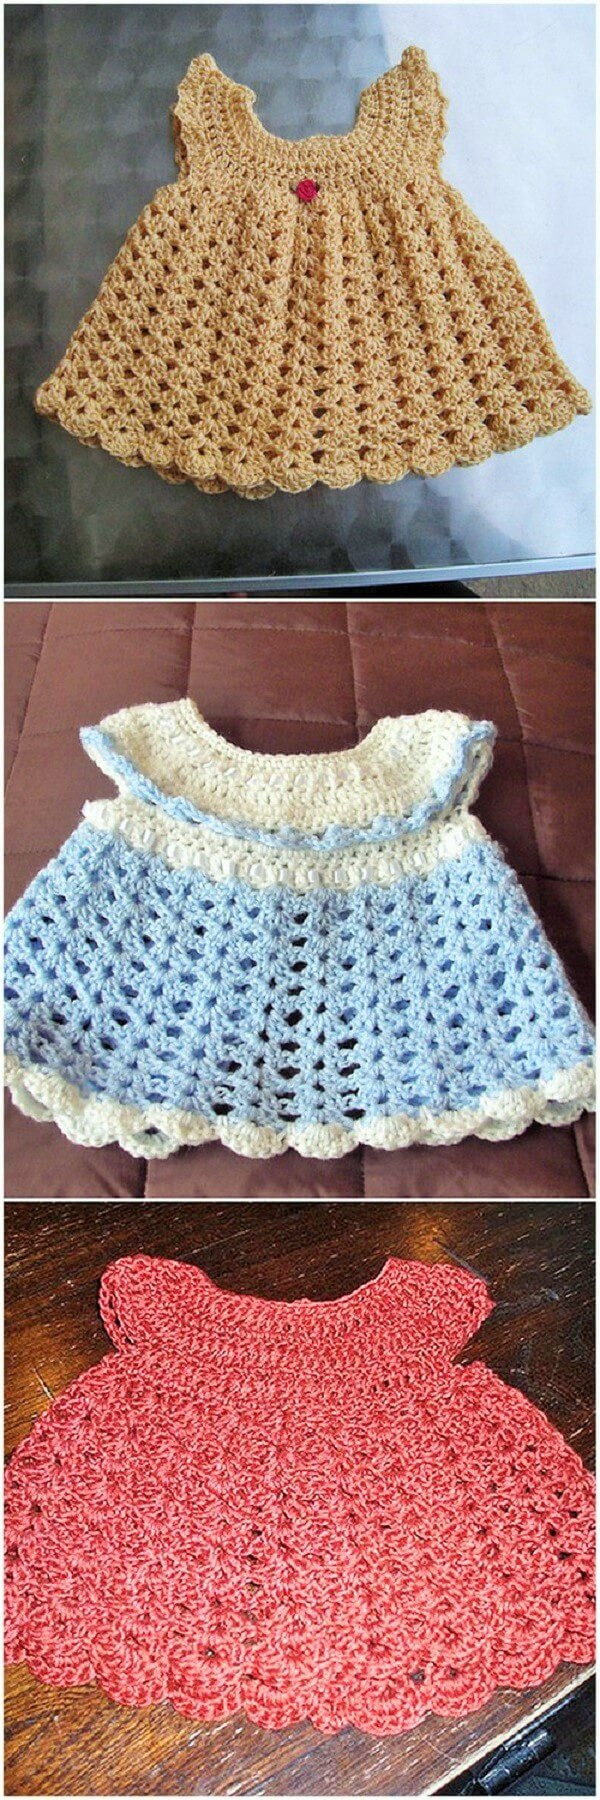 dress-crochet-free-patron (2)